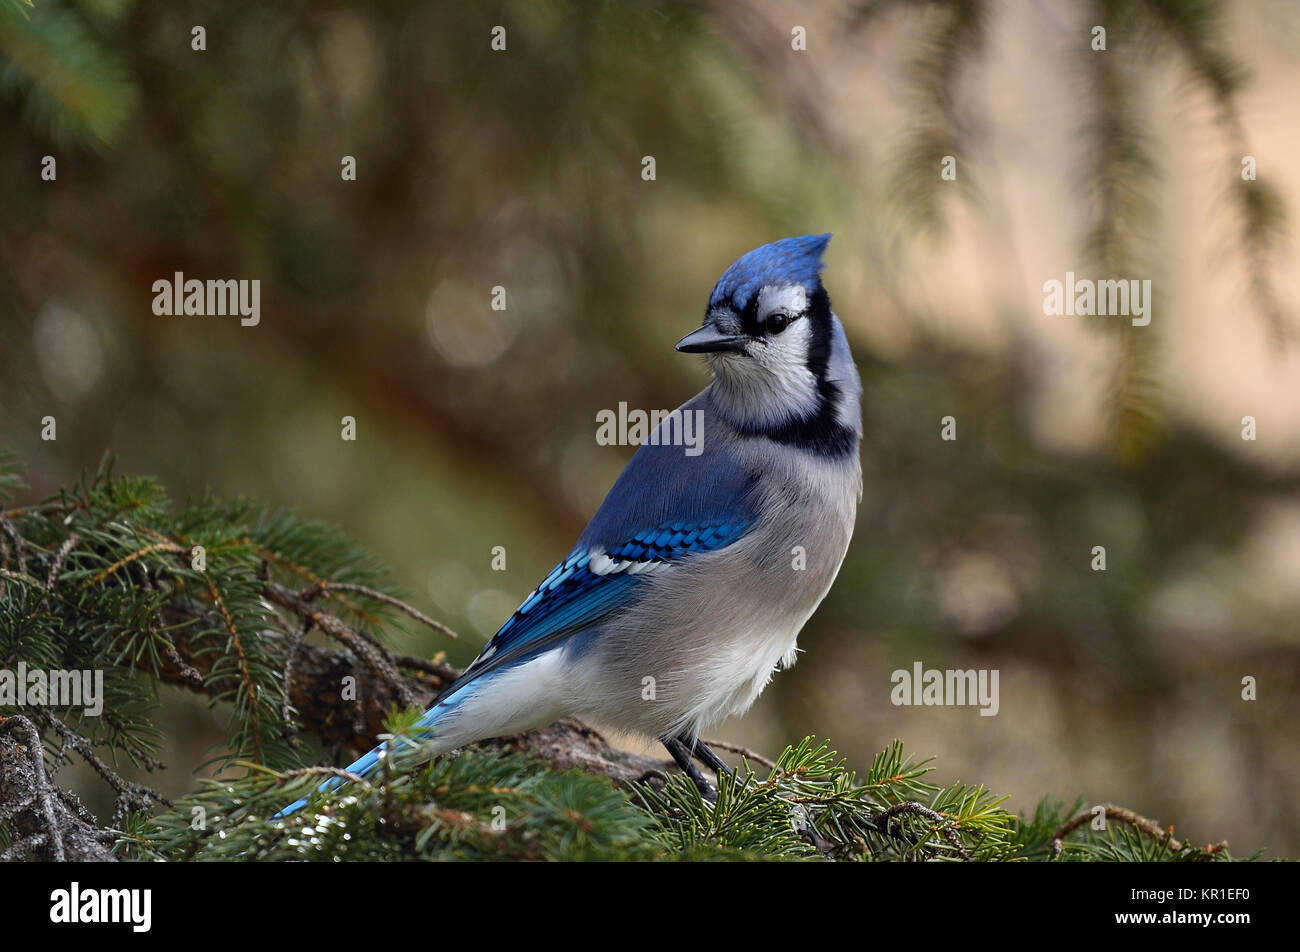 An eastern Blue Jay, Cyanocitta cristata, perched on a spruce tree branch in Alberta Canada Stock Photo